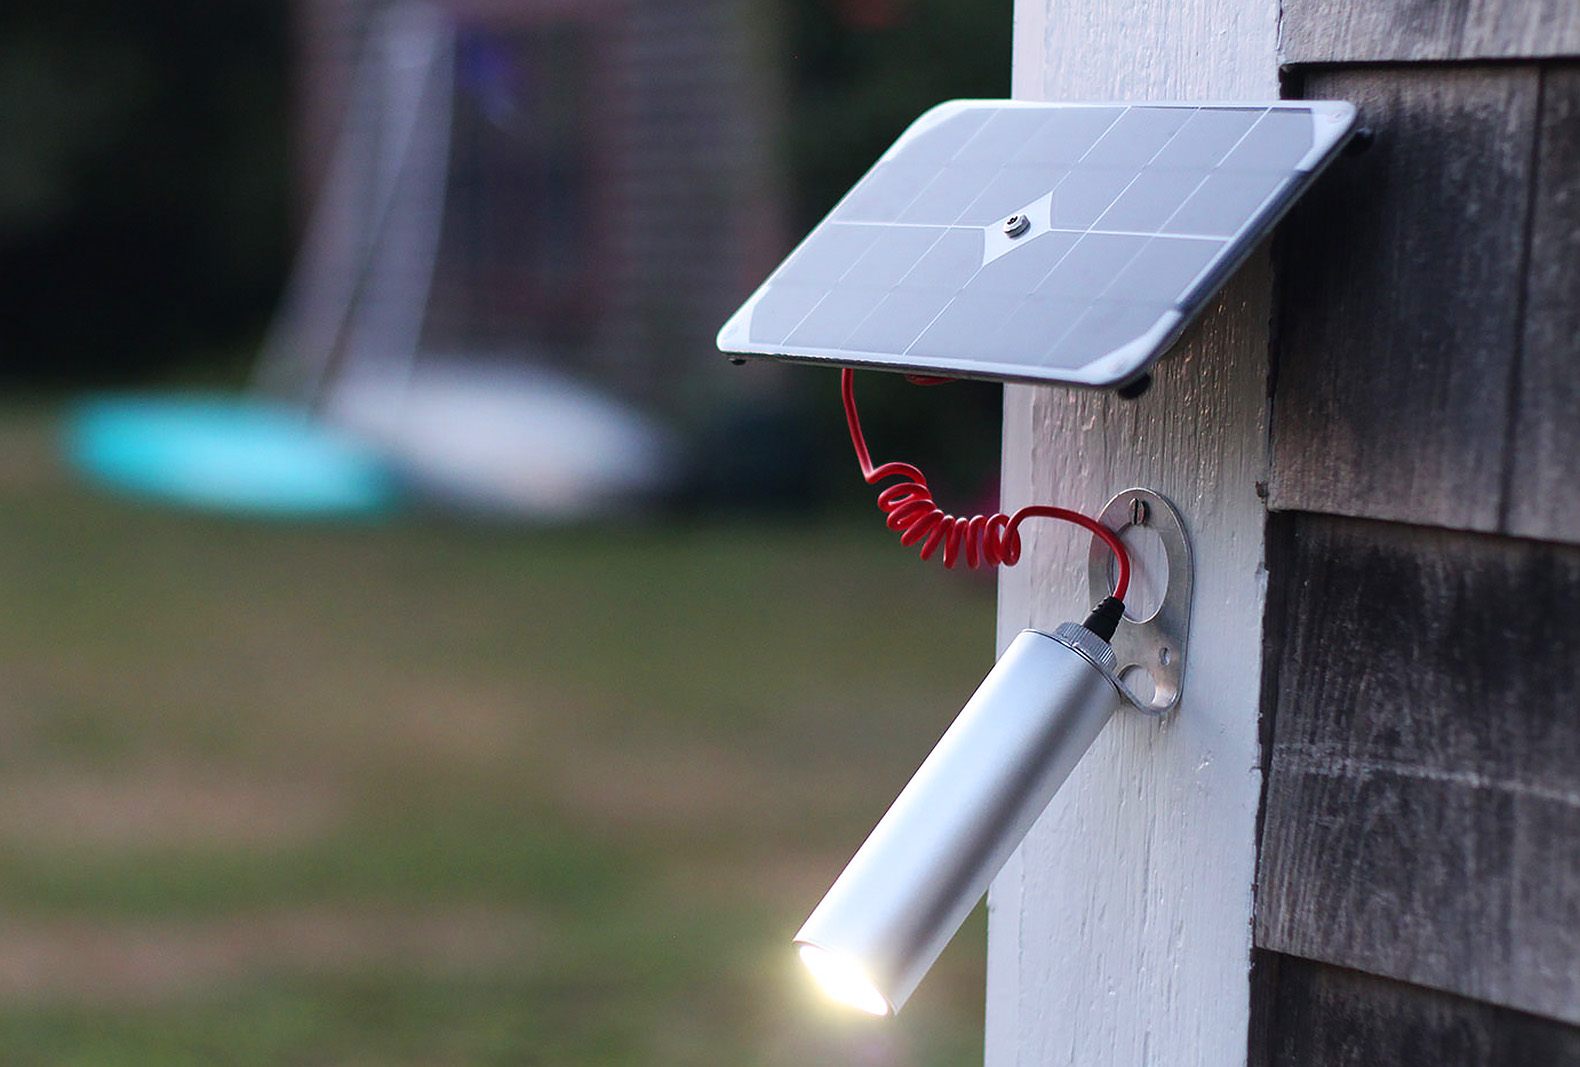 Elegant Solar Ed Shine Light Delivers 30 Hours Of Portable Led Illumination With Just One Charge